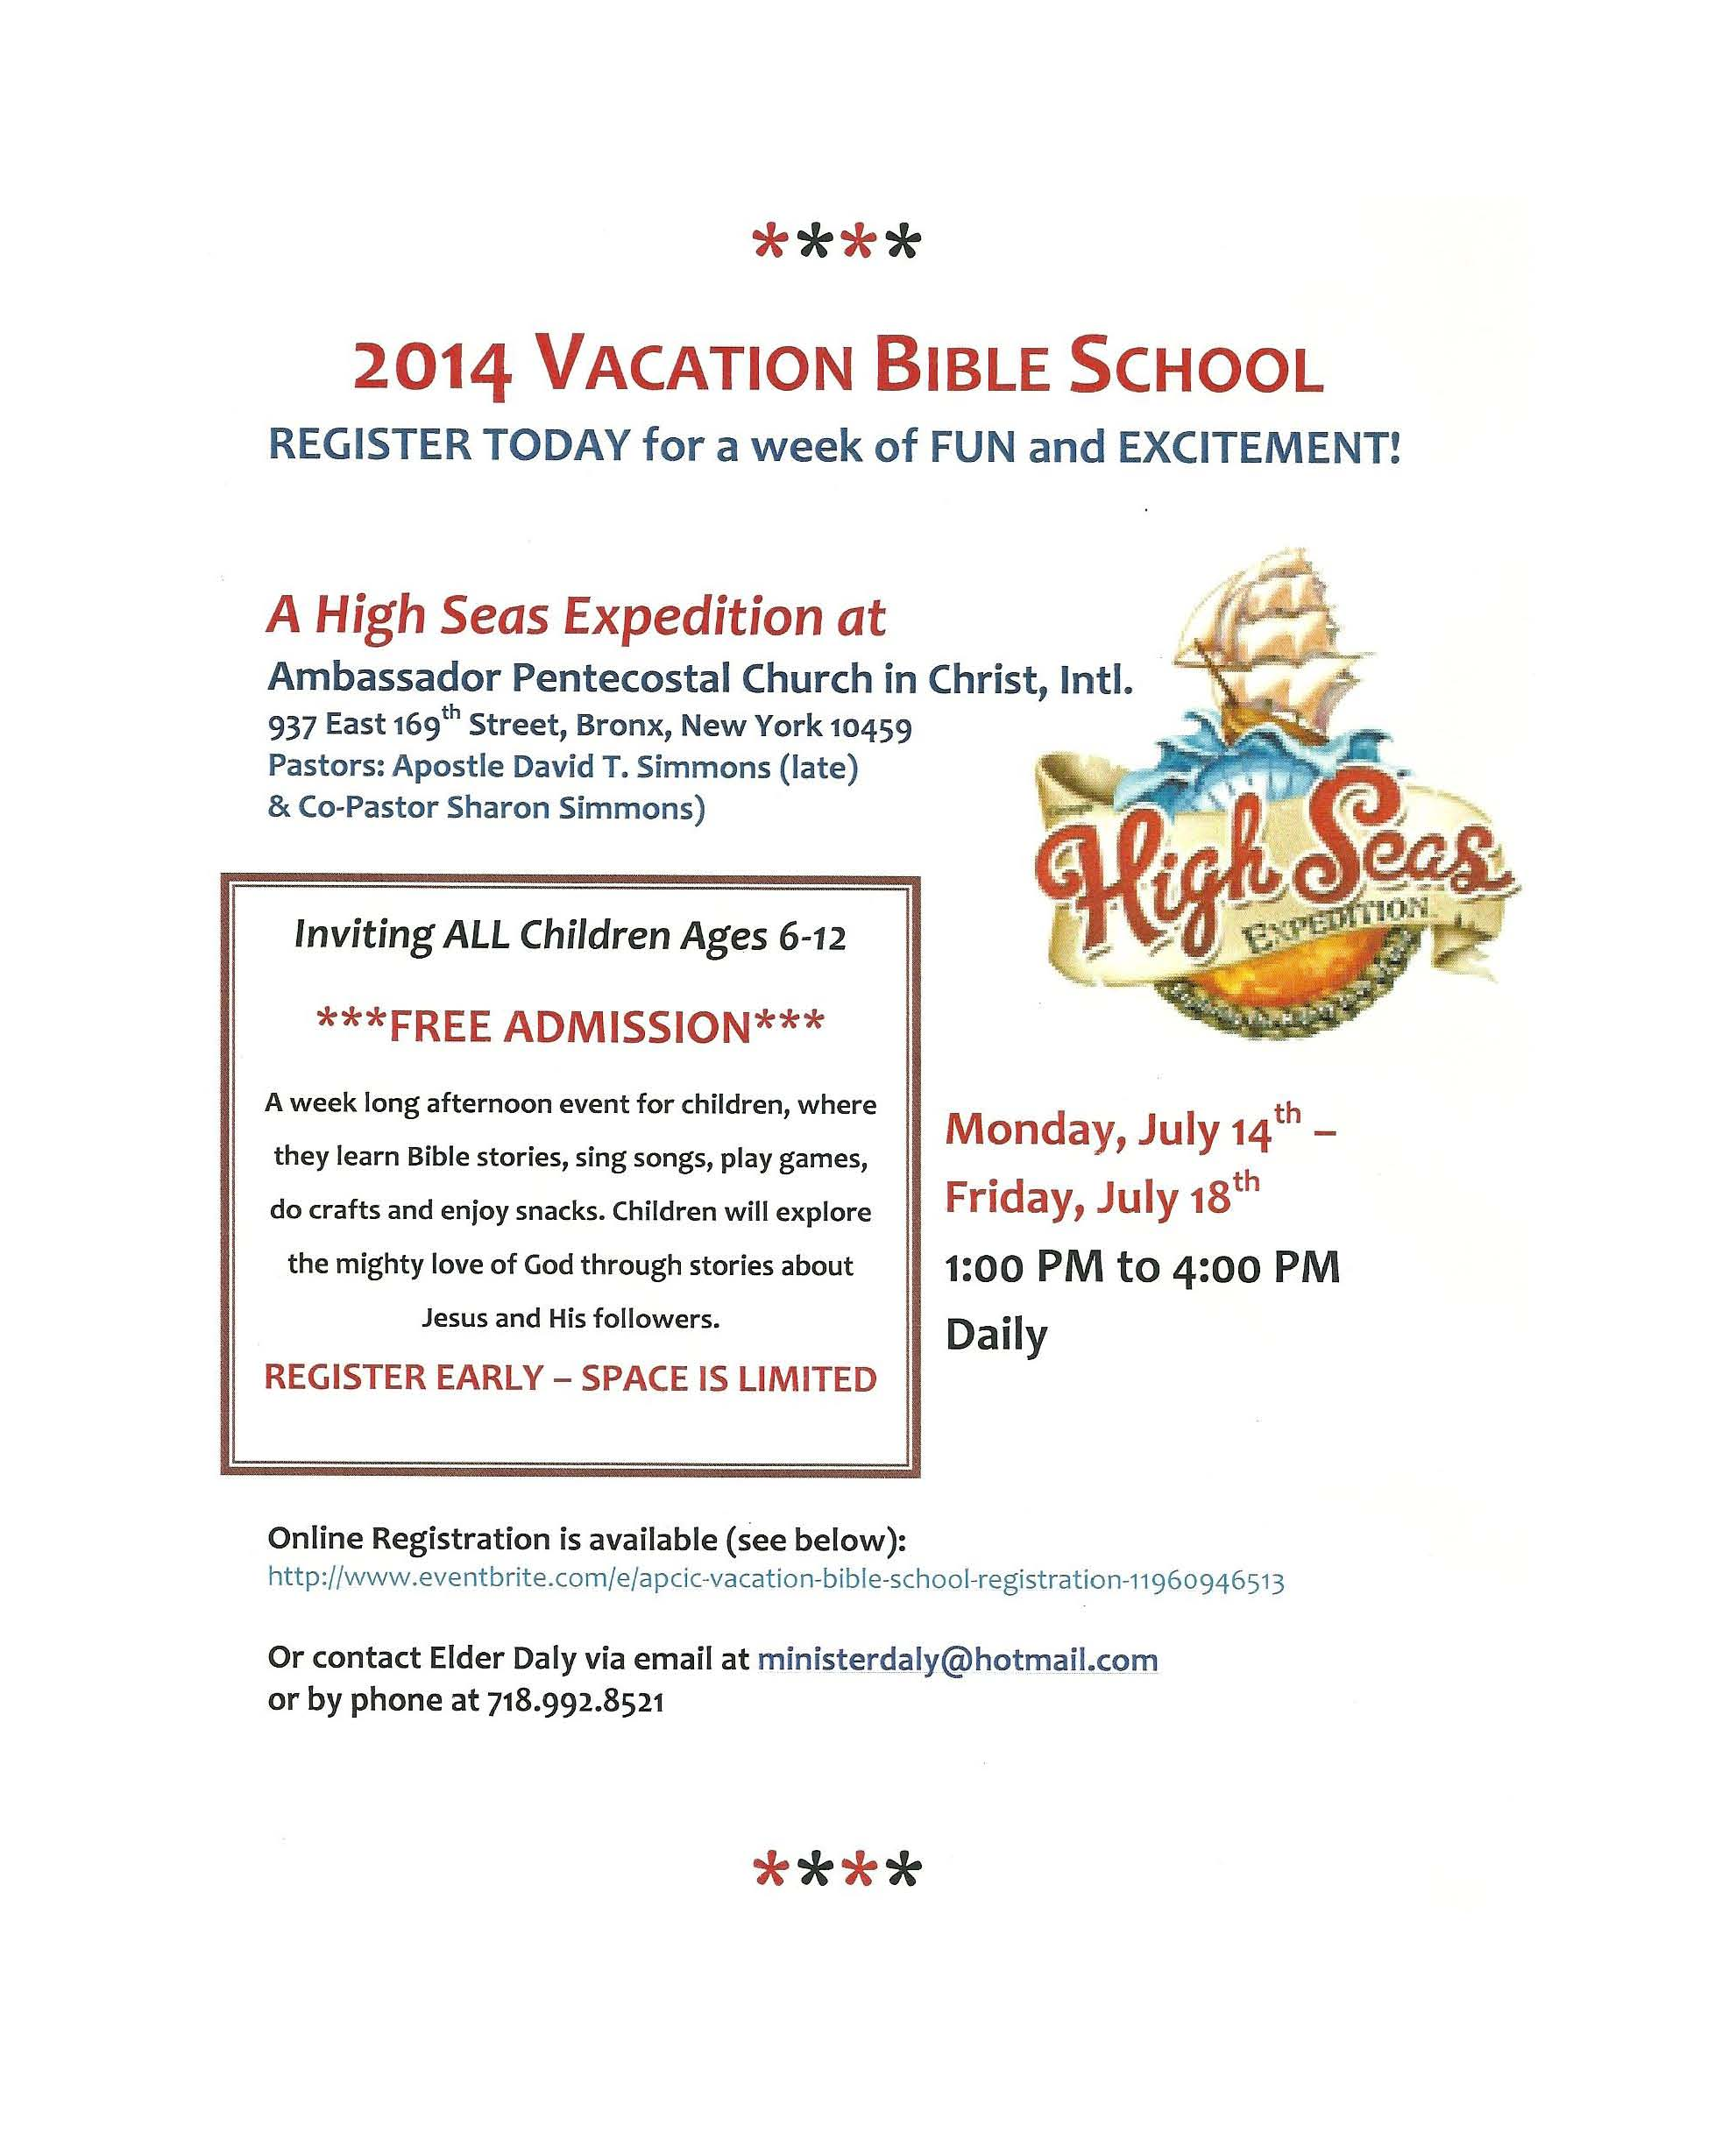 Vacation Bible School Starting Soon